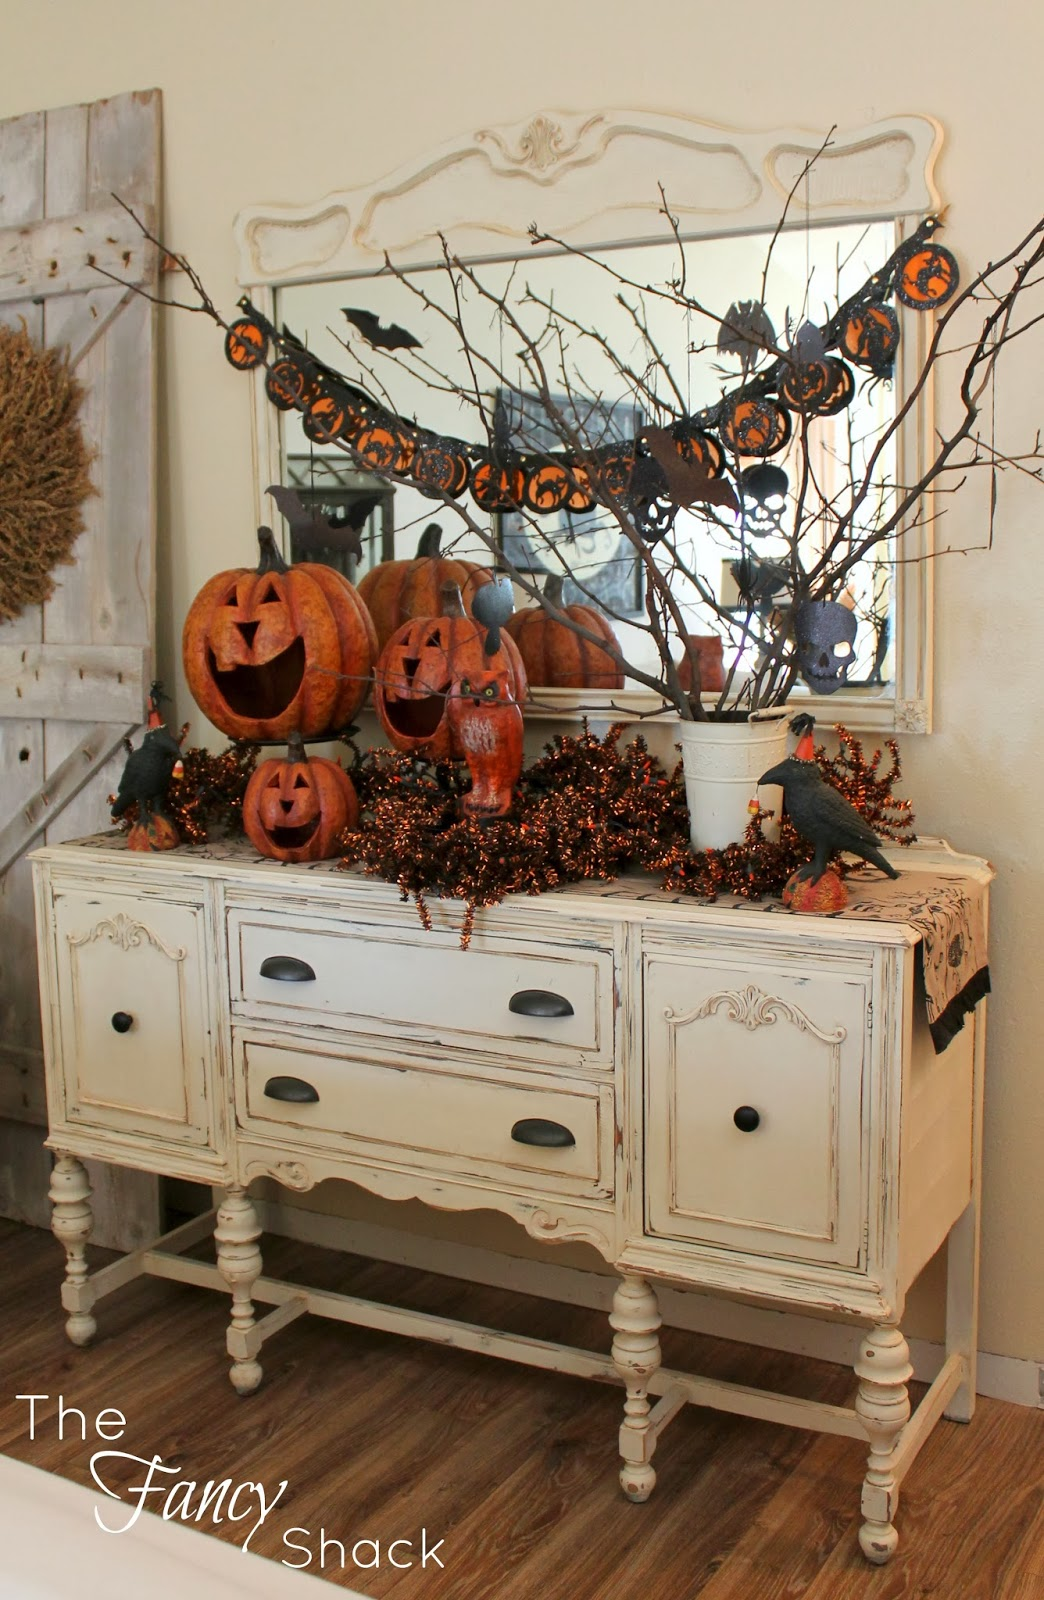 3 creative way for interior halloween decorations ideas for Home halloween decorations